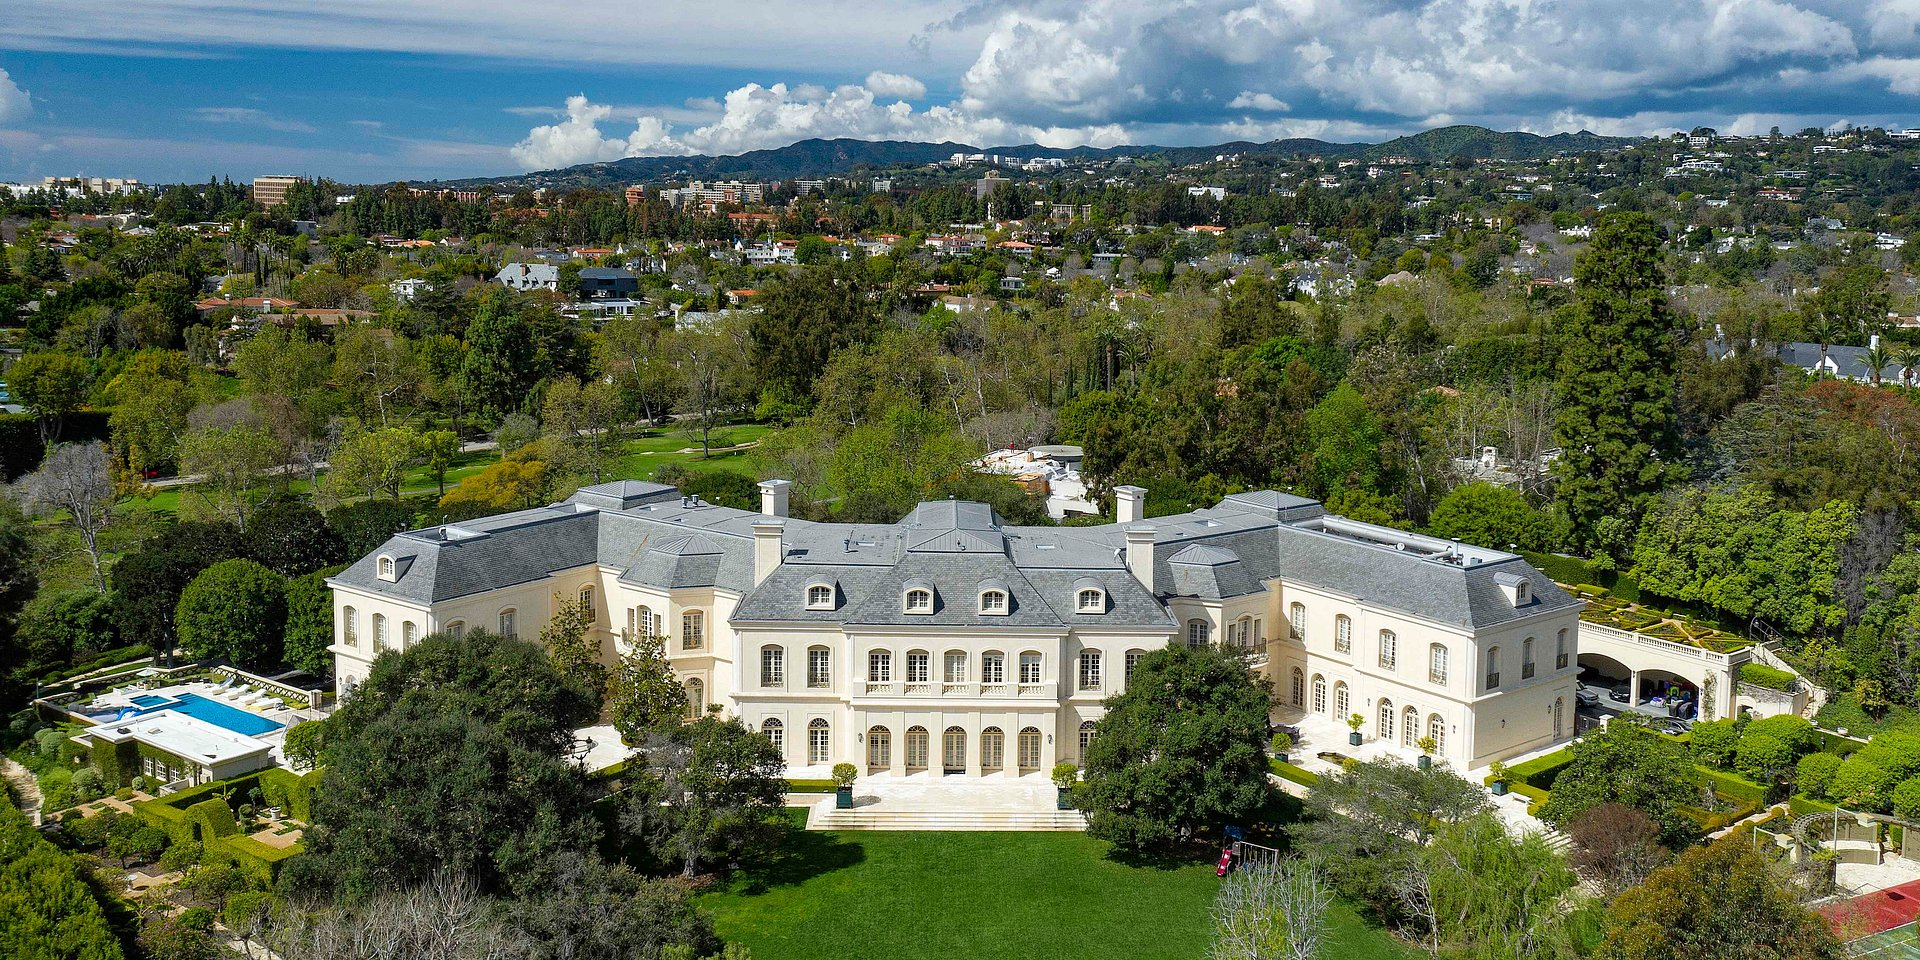 COLDWELL BANKER'S JADE MILLS ANNOUNCES LISTING OF THE MANOR ESTATE IN HOLMBY HILLS FOR $160,000,000